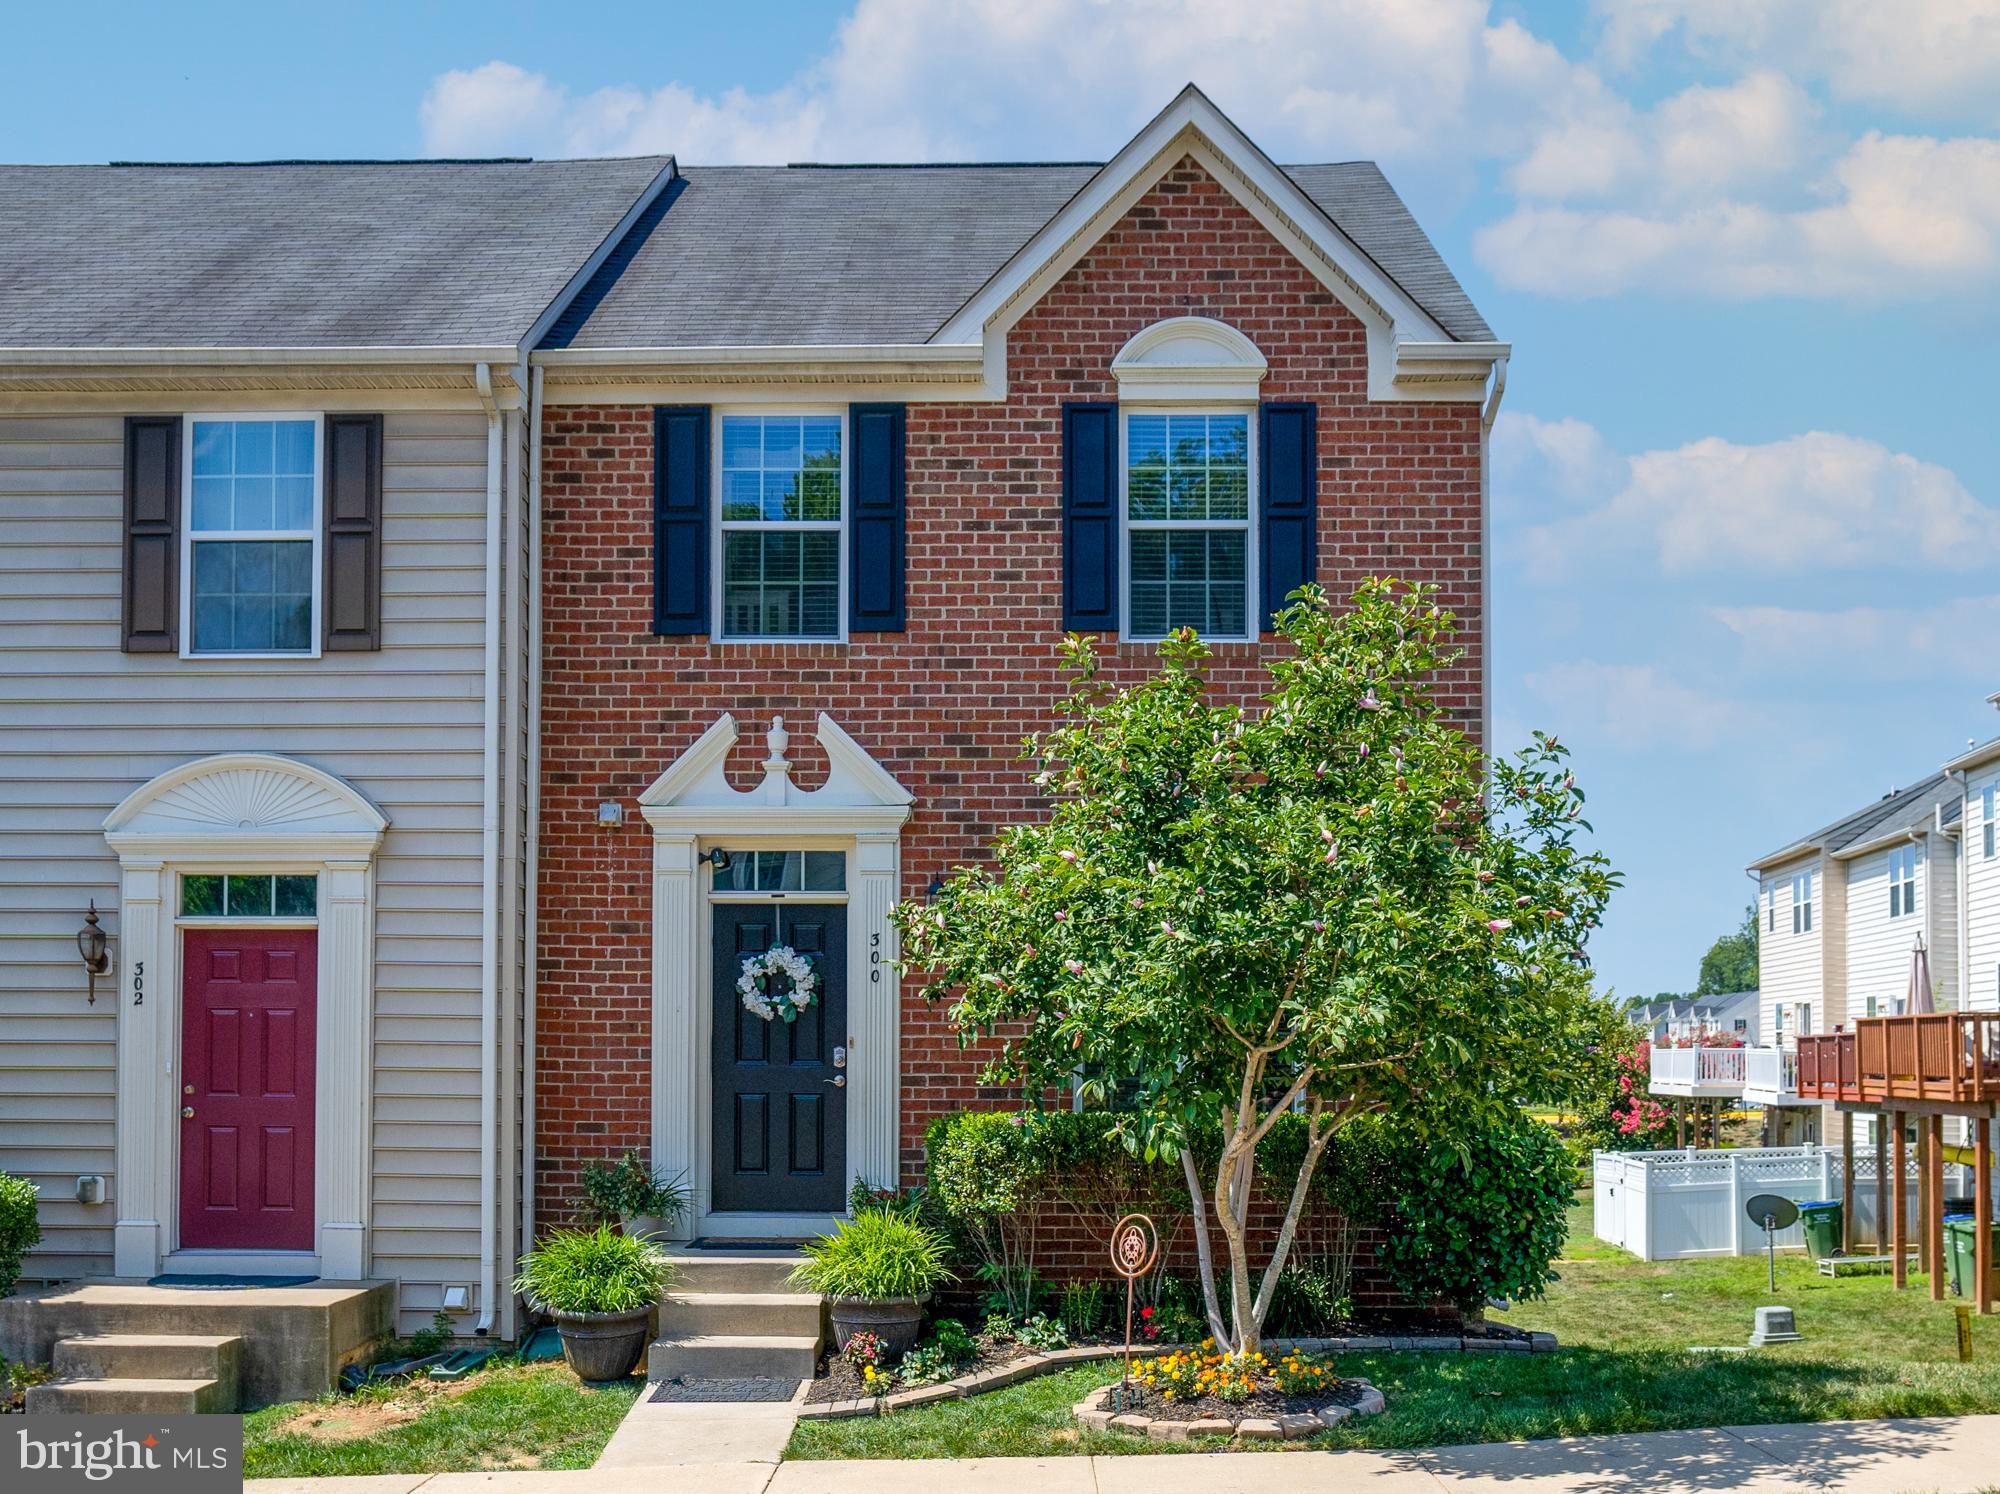 This beautiful brick end unit home is waiting for you to make it your own!   Located off of US 17 N with both I95 and the VRE within 5 miles makes commuting a breeze. Open floor plan on the main level.  Kitchen backsplash and crown molding throughout the main level added in 2020. Step out onto the spacious composite deck overlooking the pond ,  the perfect spot to enjoy your coffee or start your day.    Upstairs you will find 3 bedrooms and 2 baths with your laundry room conveniently located on the same level.  Vinyl plank flooring on 2nd level added in 2020.   With a  finished walkout basement this home has plenty of space for you and your family. Schedule your tour today!